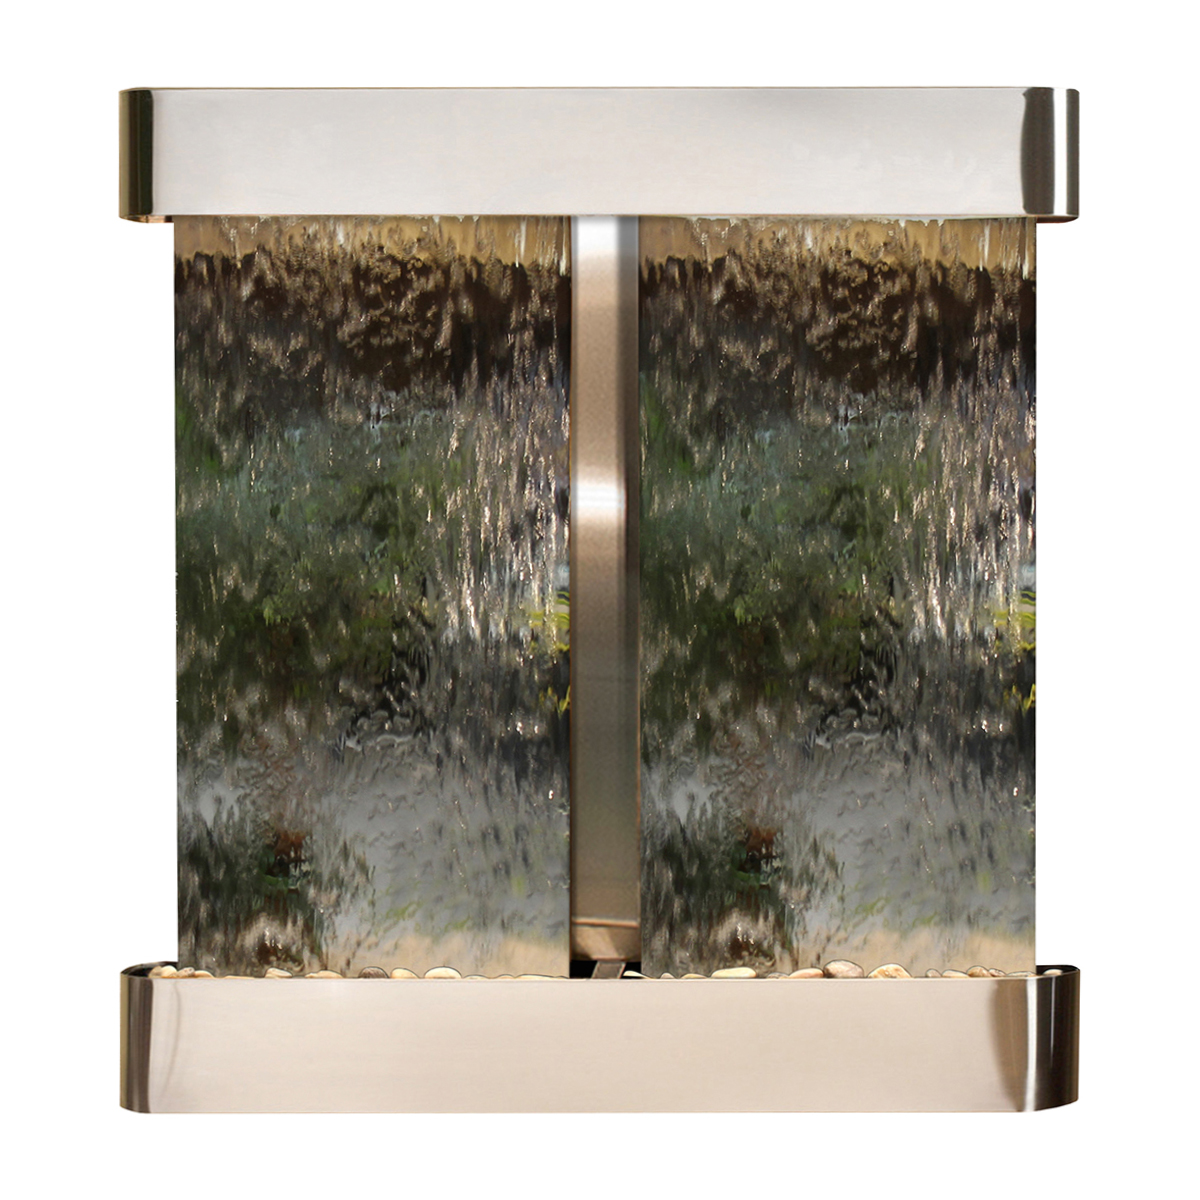 Falls Fountain Rounded Silver Mirror Photo